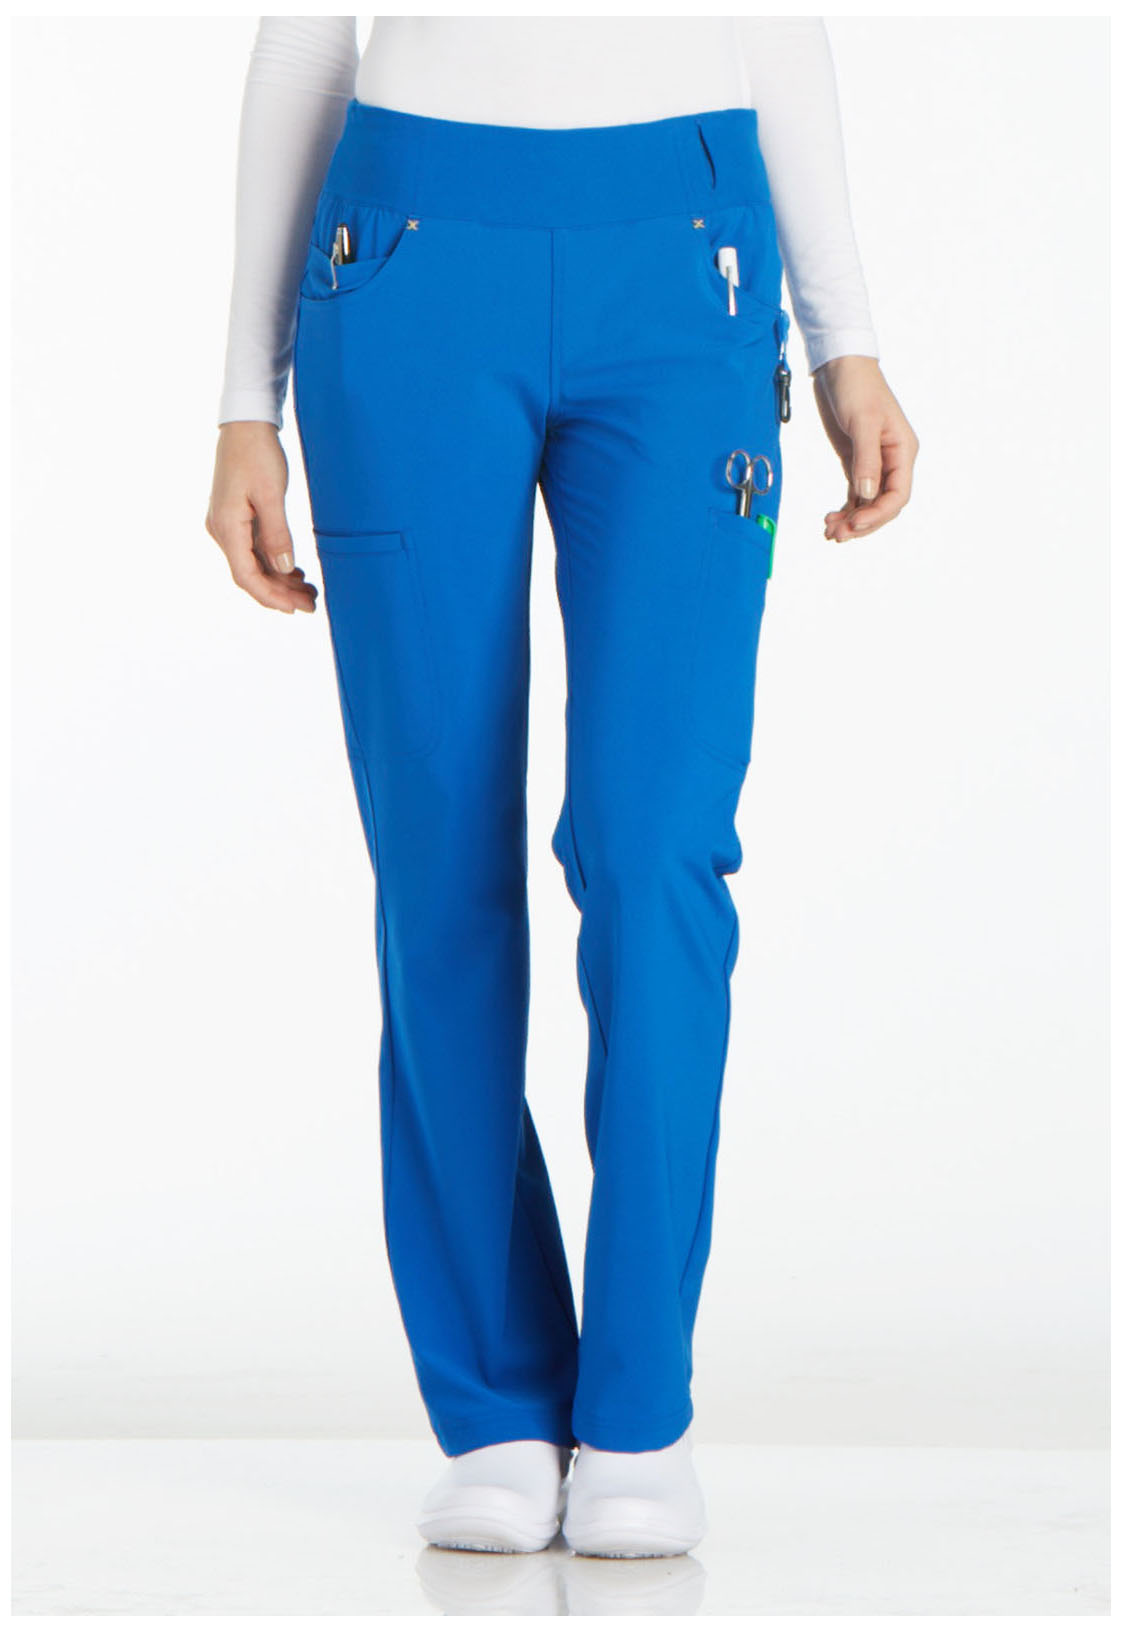 5e99fd3137d iFlex Mid Rise Straight Leg Pull-on Pant in Royal CK002-ROY from ...